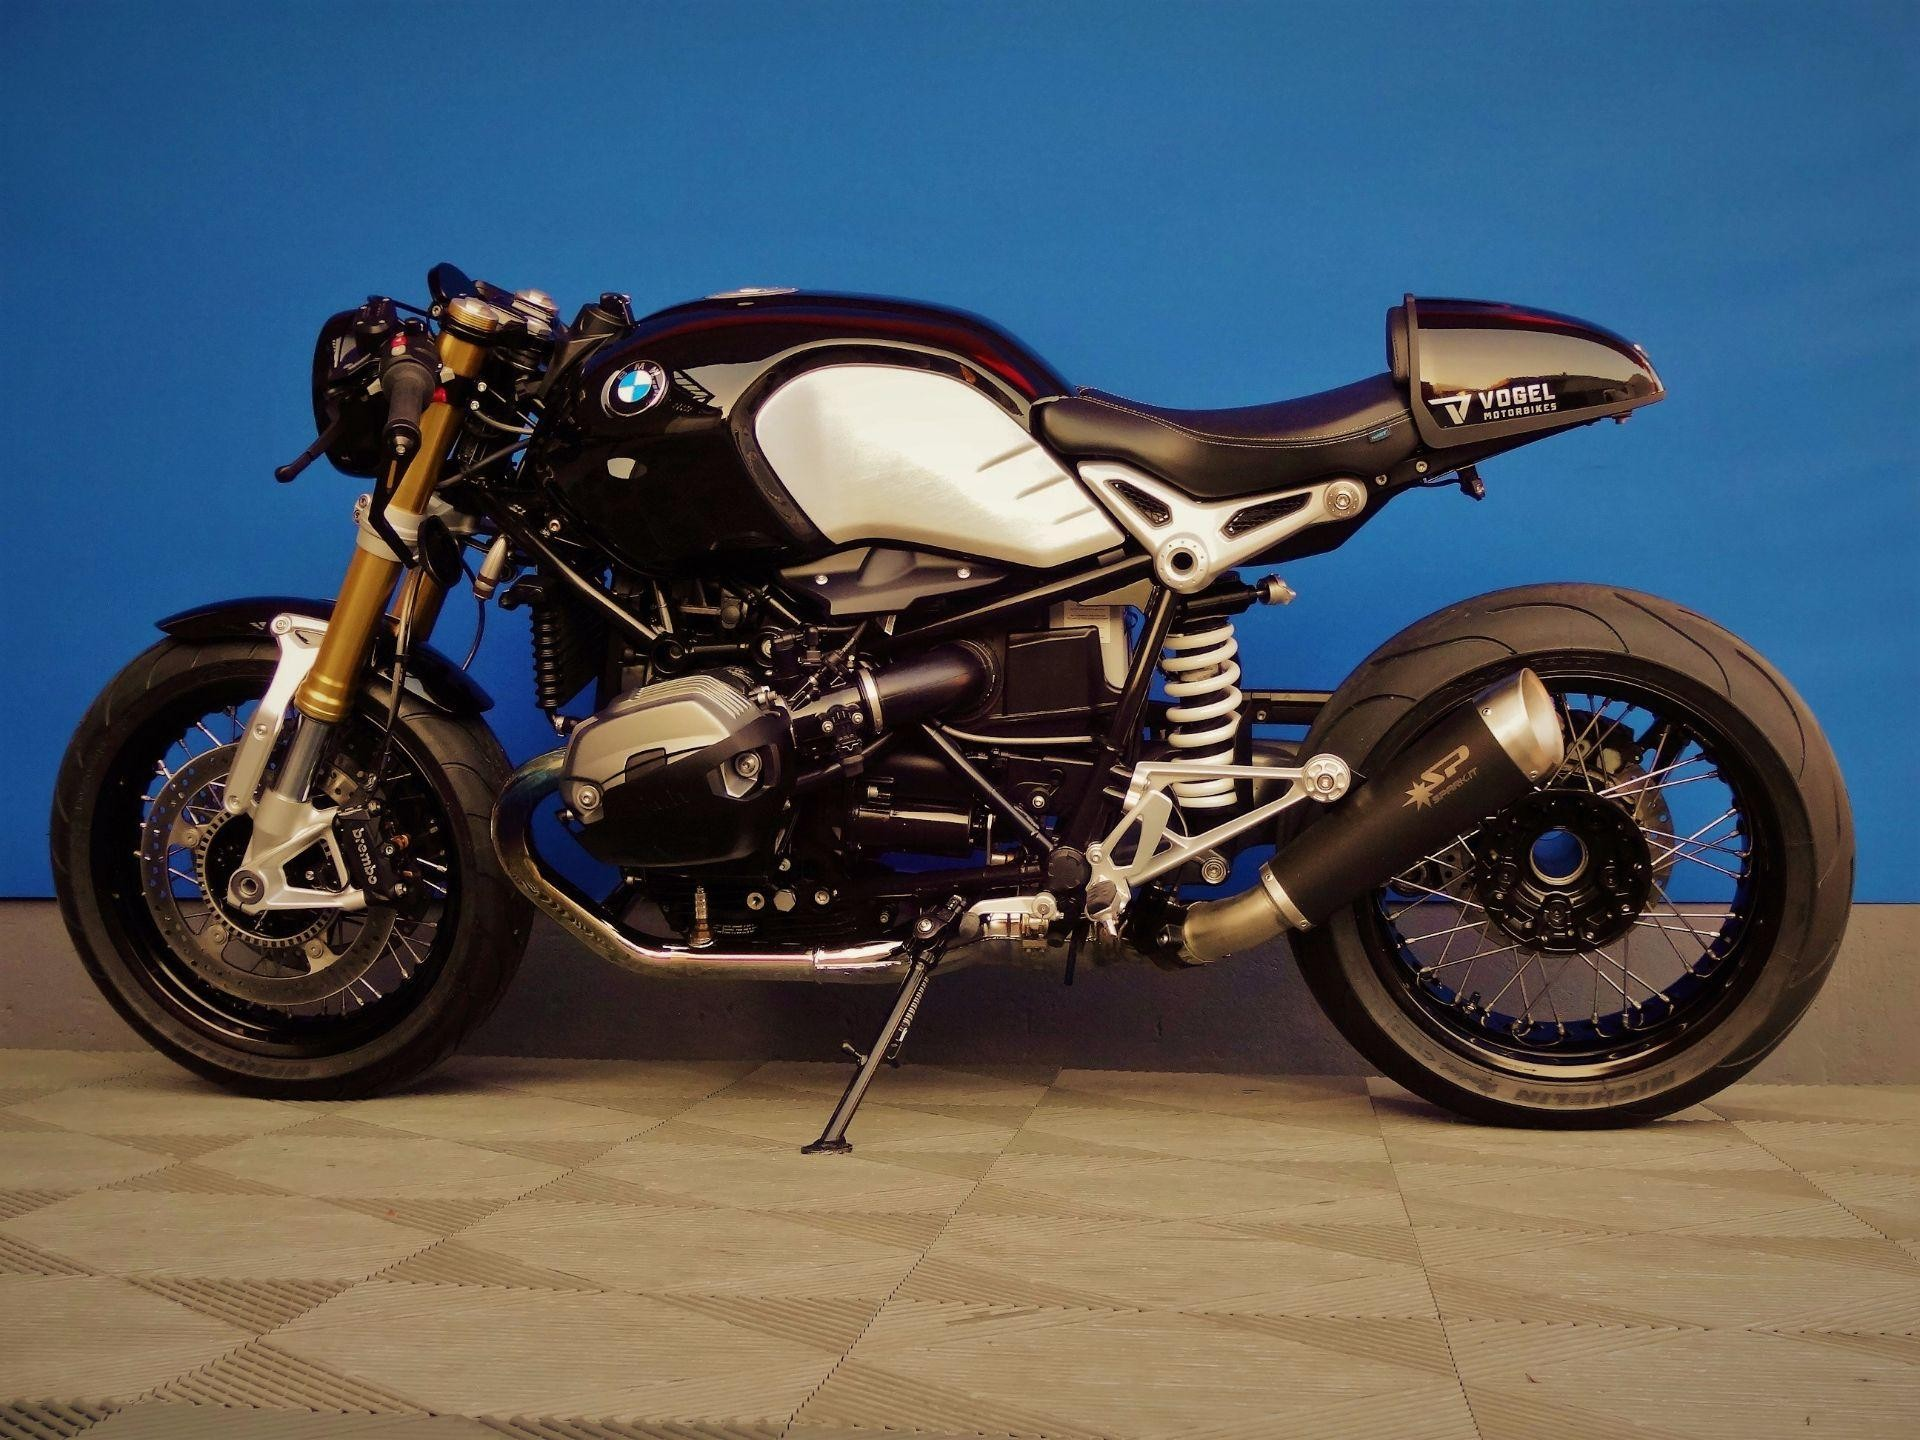 bmw r nine t abs cafe racer vogel motorbikes sch pfheim occasion. Black Bedroom Furniture Sets. Home Design Ideas